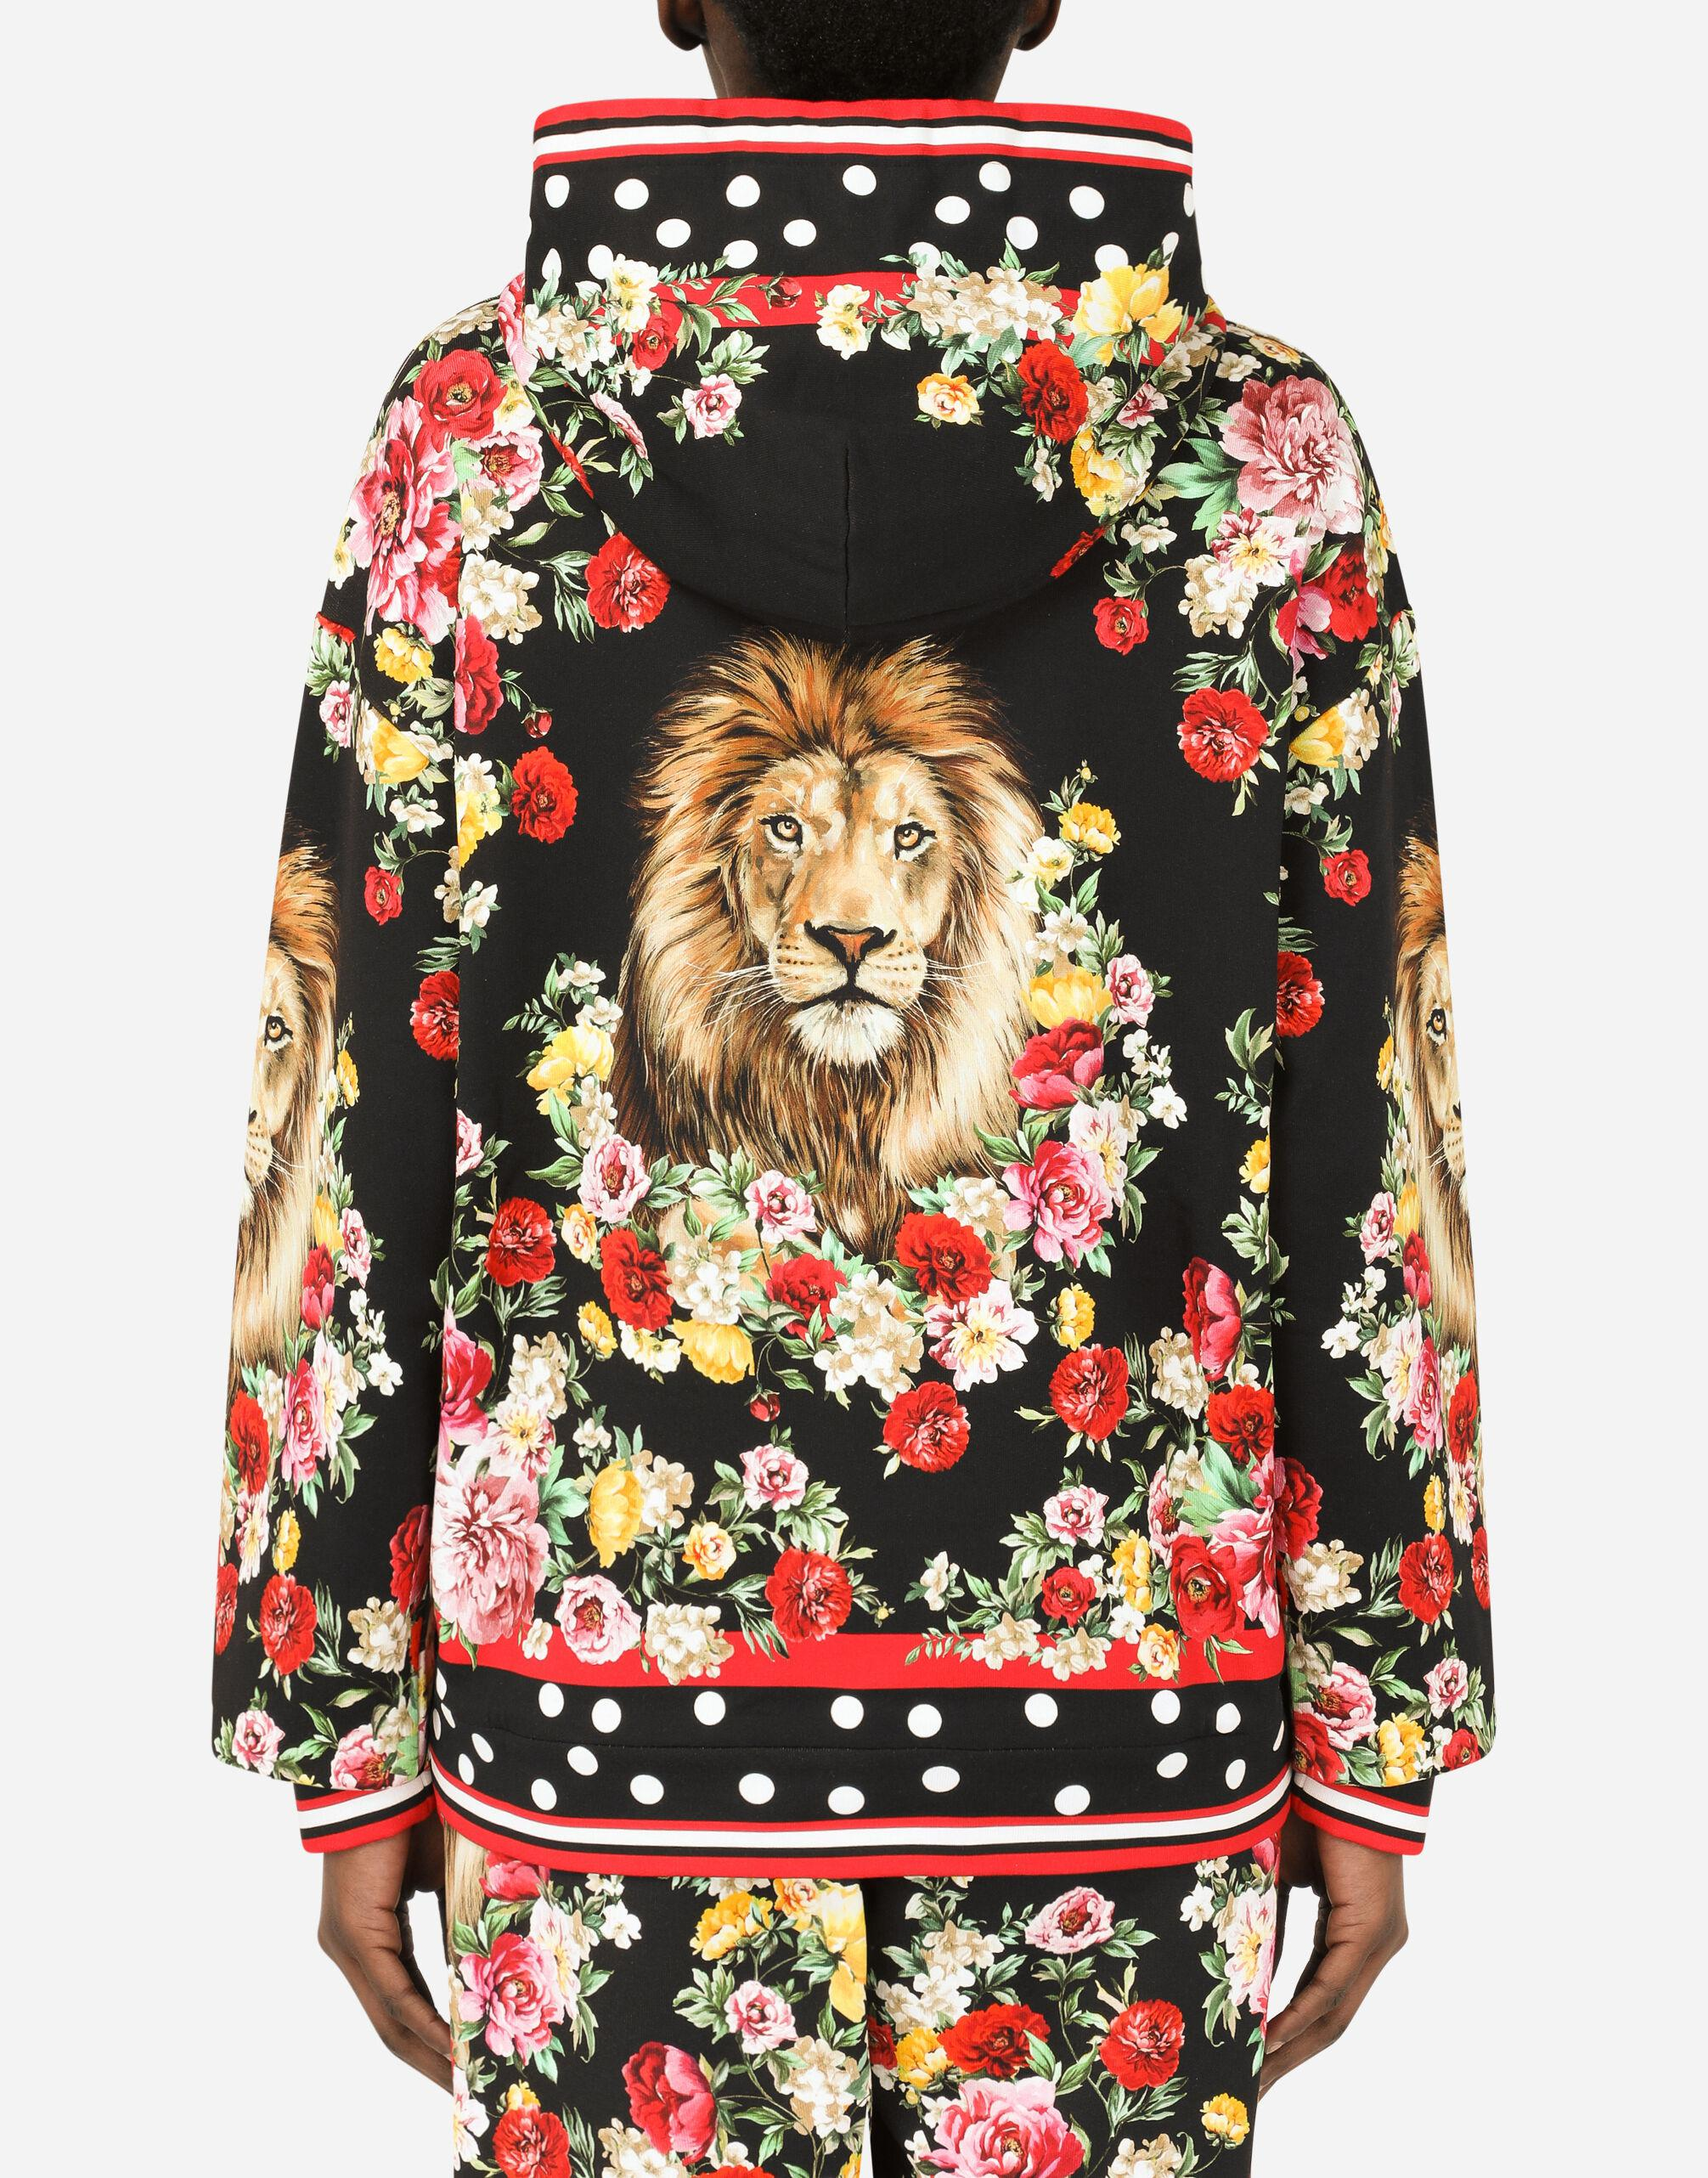 Hoodie with lion mix print 6